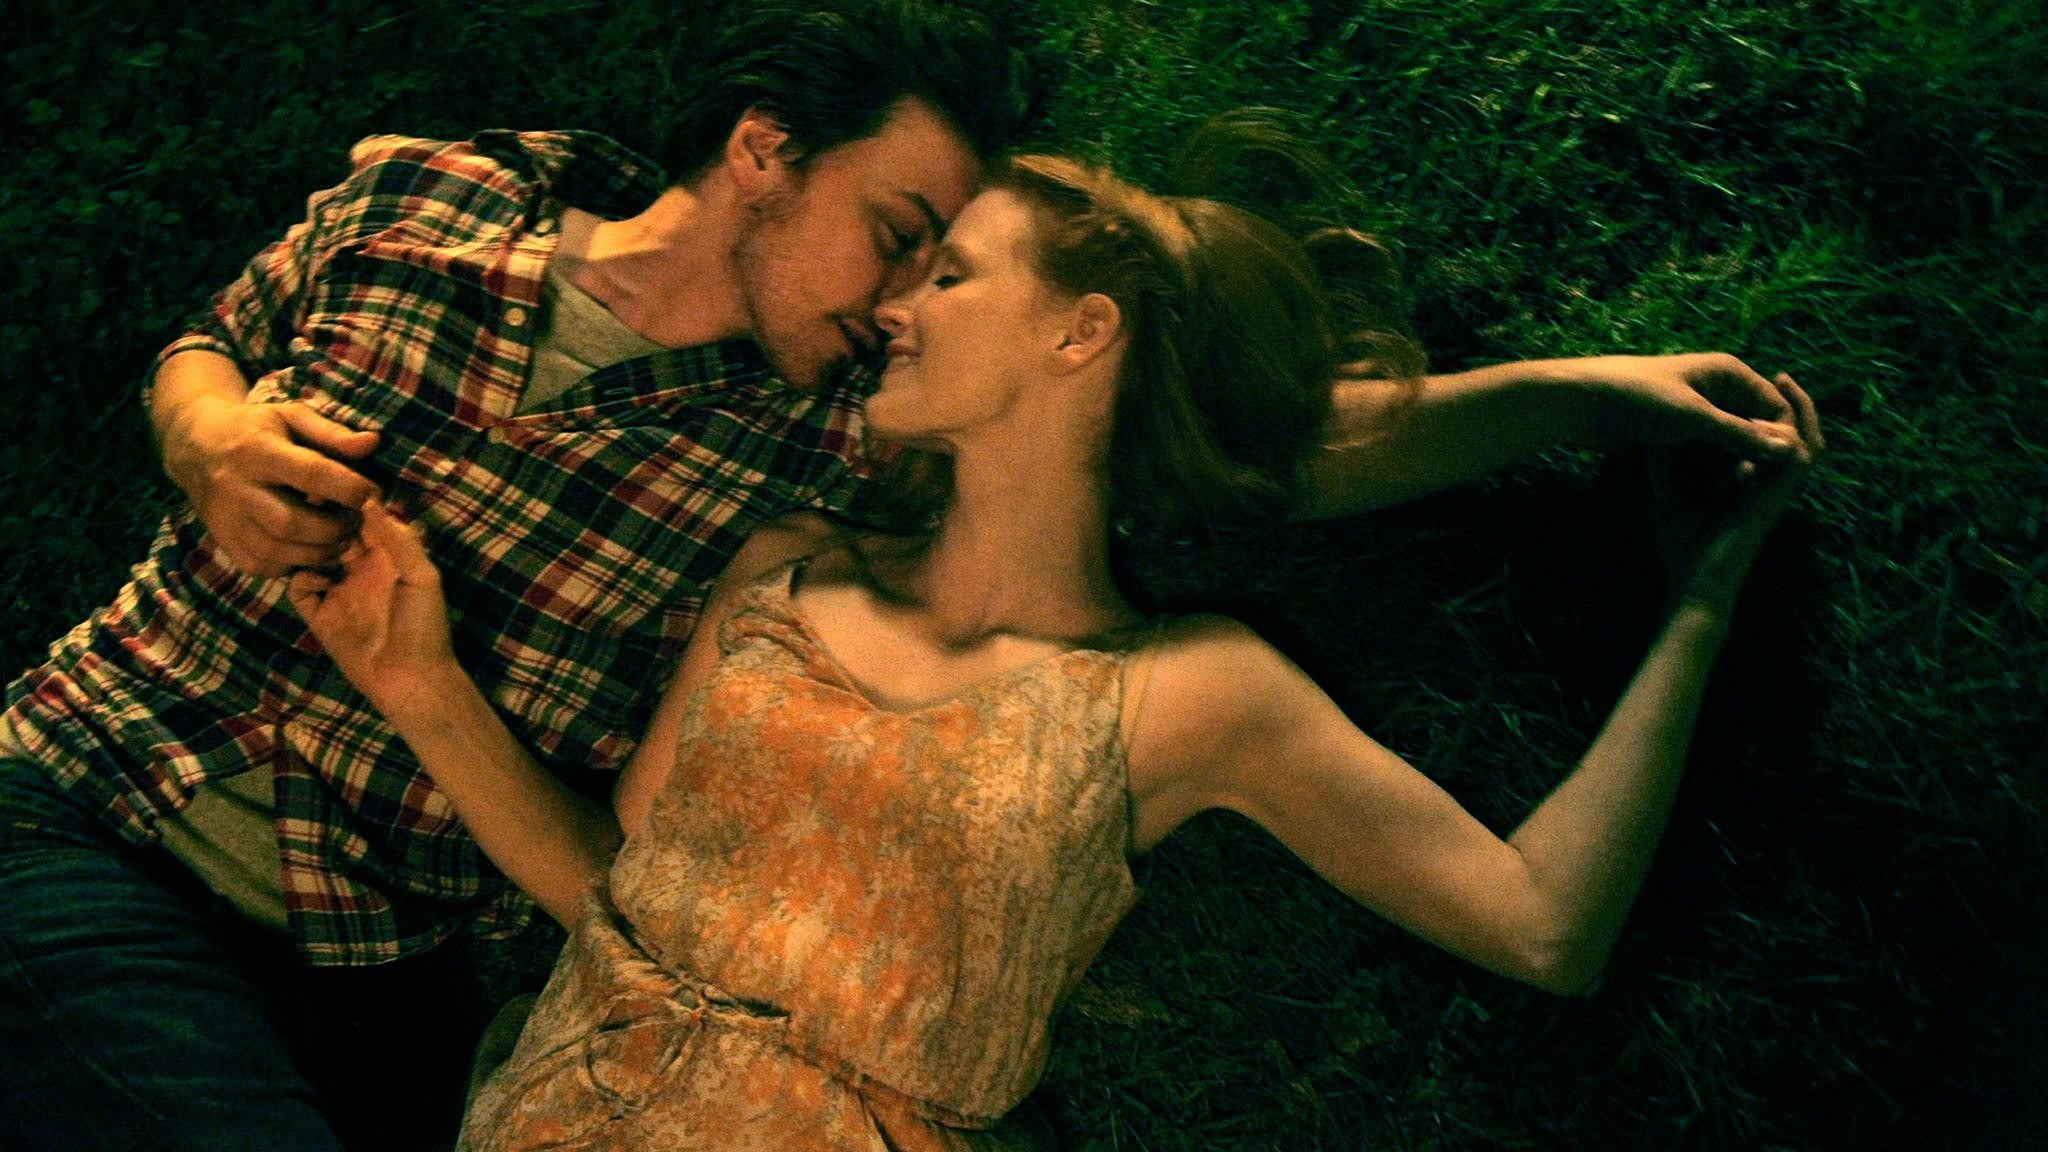 James McAvoy and Jessica Chastain star in The Disappearance of Eleanor Rigby